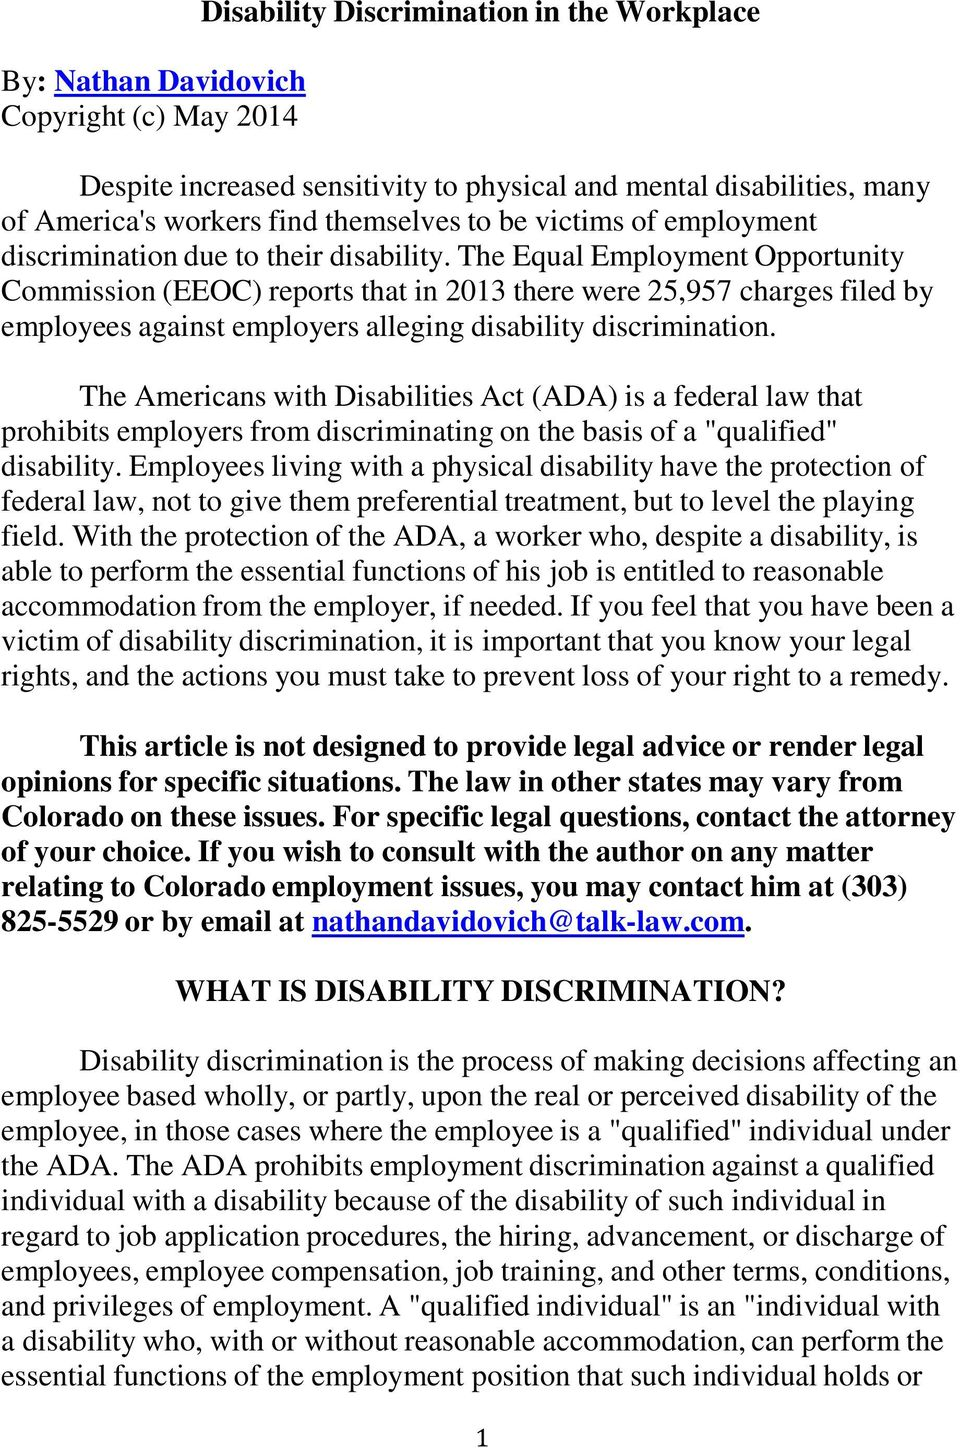 The Equal Employment Opportunity Commission (EEOC) reports that in 2013 there were 25,957 charges filed by employees against employers alleging disability discrimination.